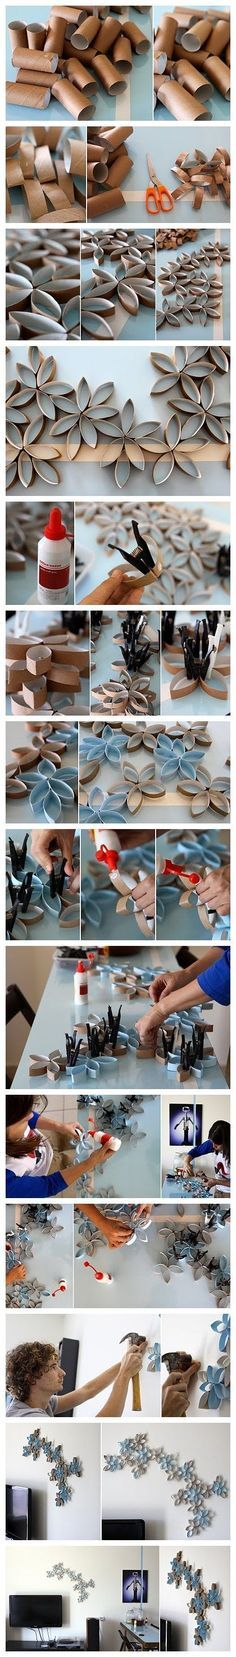 How to DIY toilet paper roll wall art project - http://centophobe.com/how-to-diy-toilet-paper-roll-wall-art-project/ -